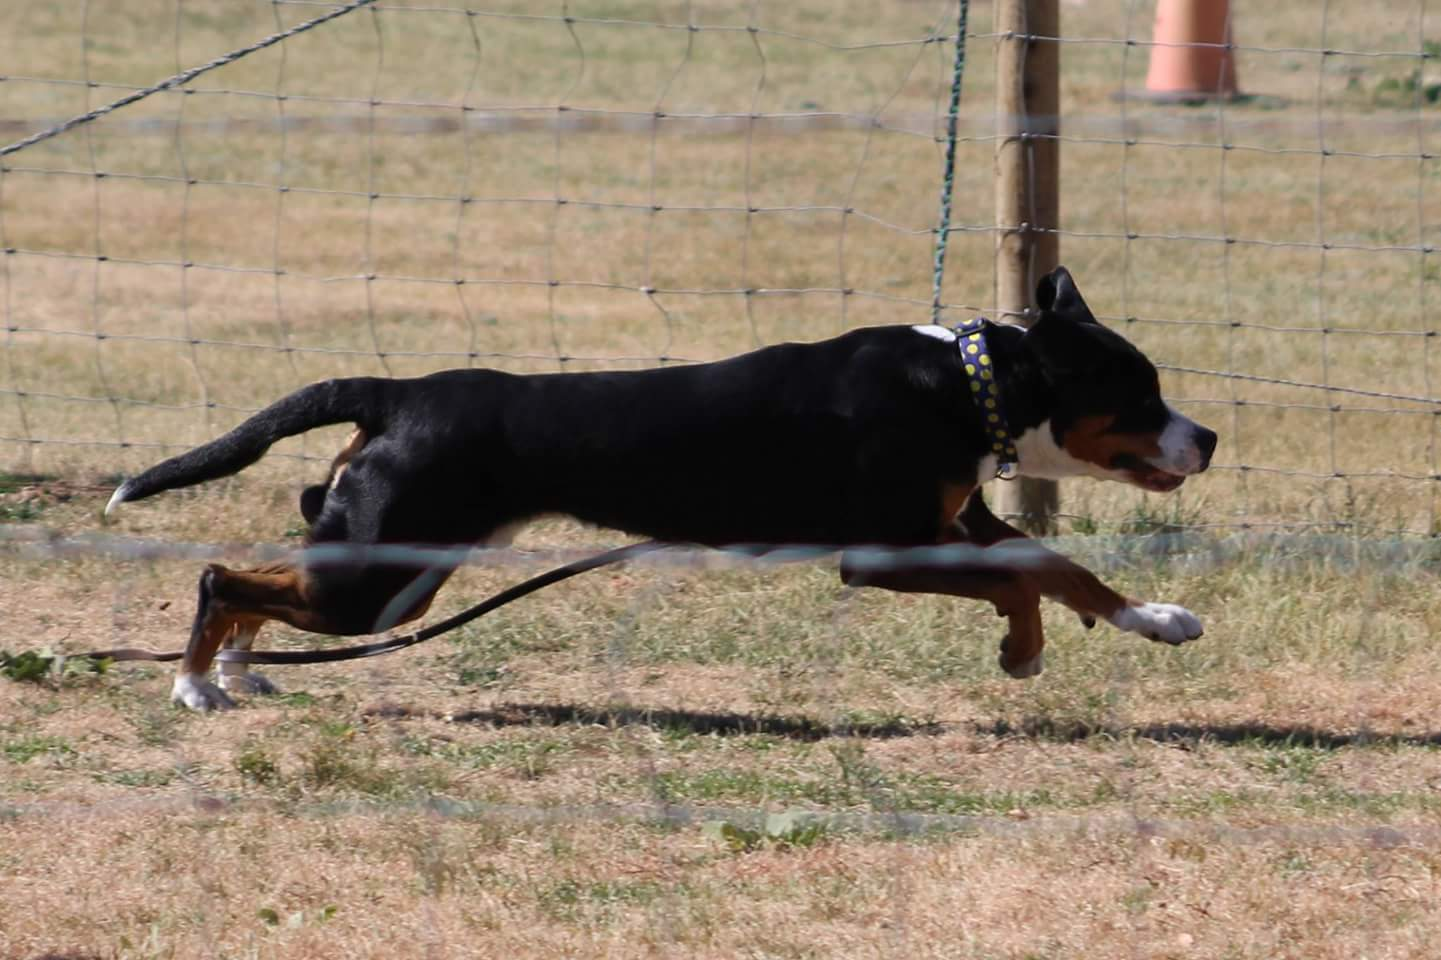 Collins earning the first leg towards his Herding Capability Tested (HCT) title.